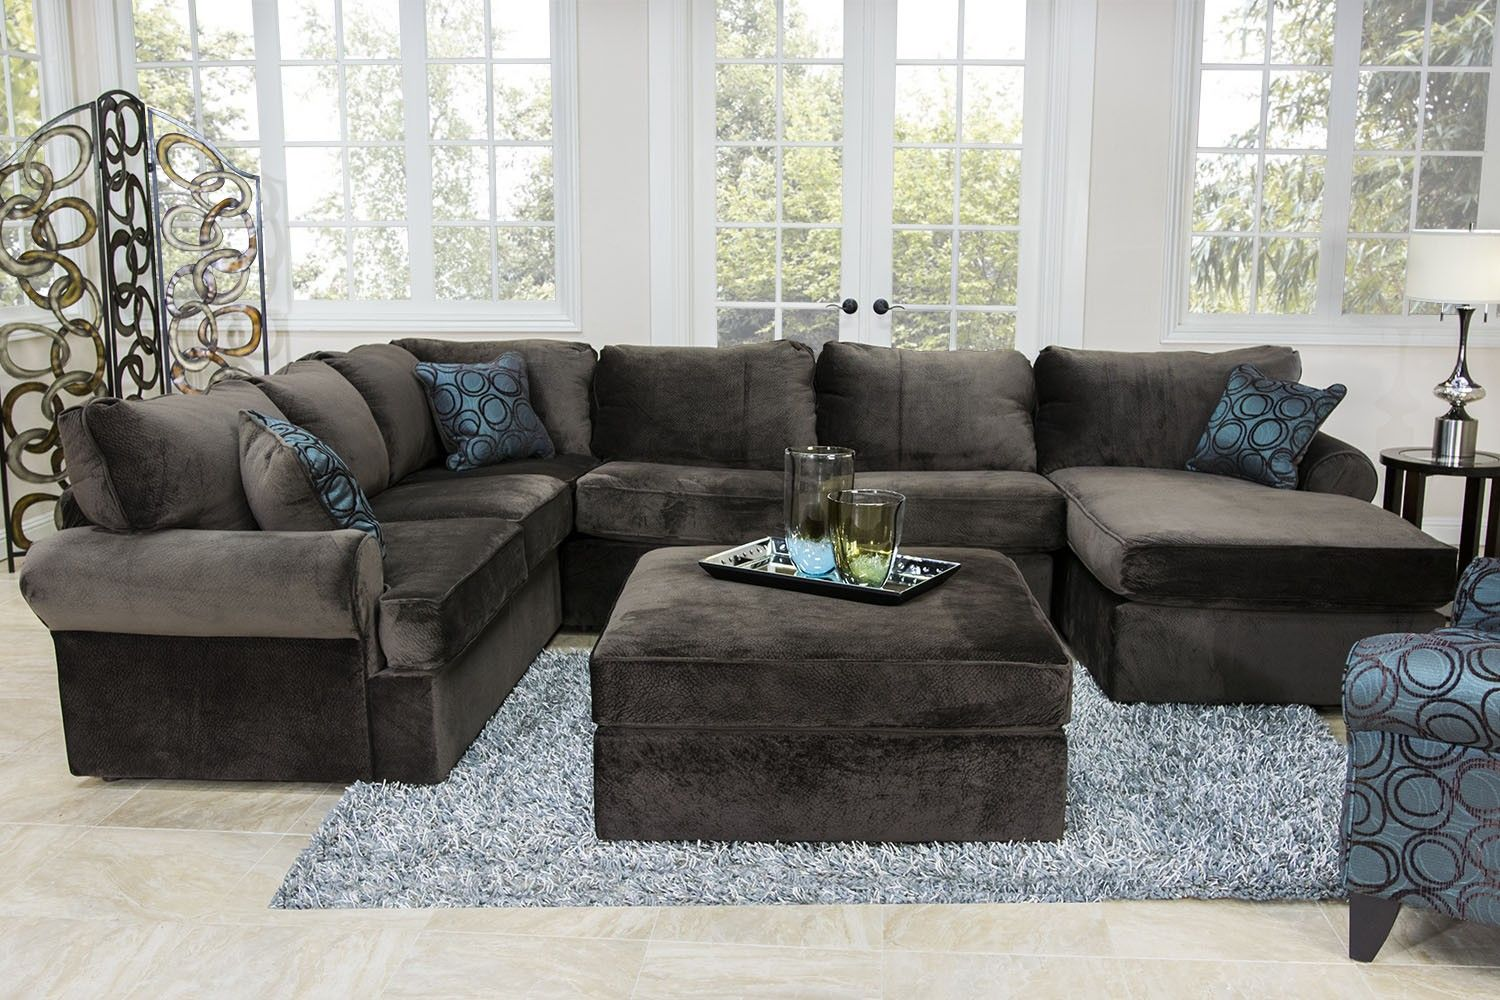 Napa Chocolate Sectional Living Room - Living Room | Mor Furniture for Less & Napa Chocolate Sectional Living Room - Living Room | Mor Furniture ... islam-shia.org